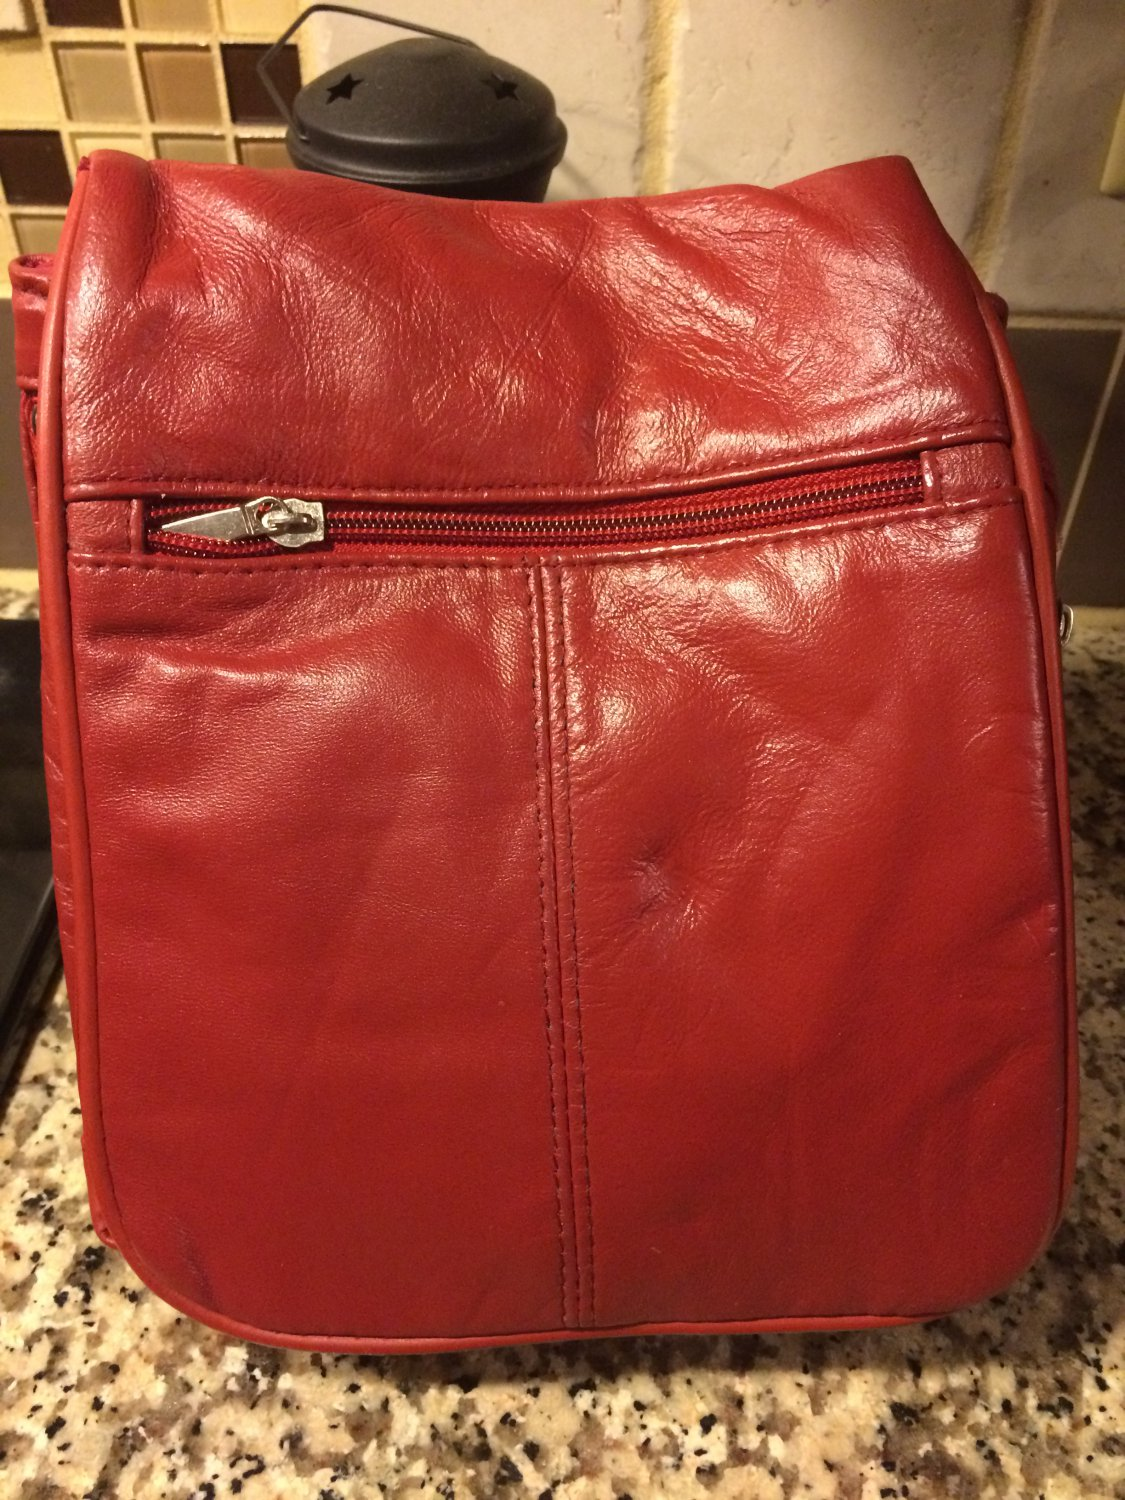 New ~ BUXTON Travel Bag Organizer Cross body Expandable Bag Purse  - Leather Red